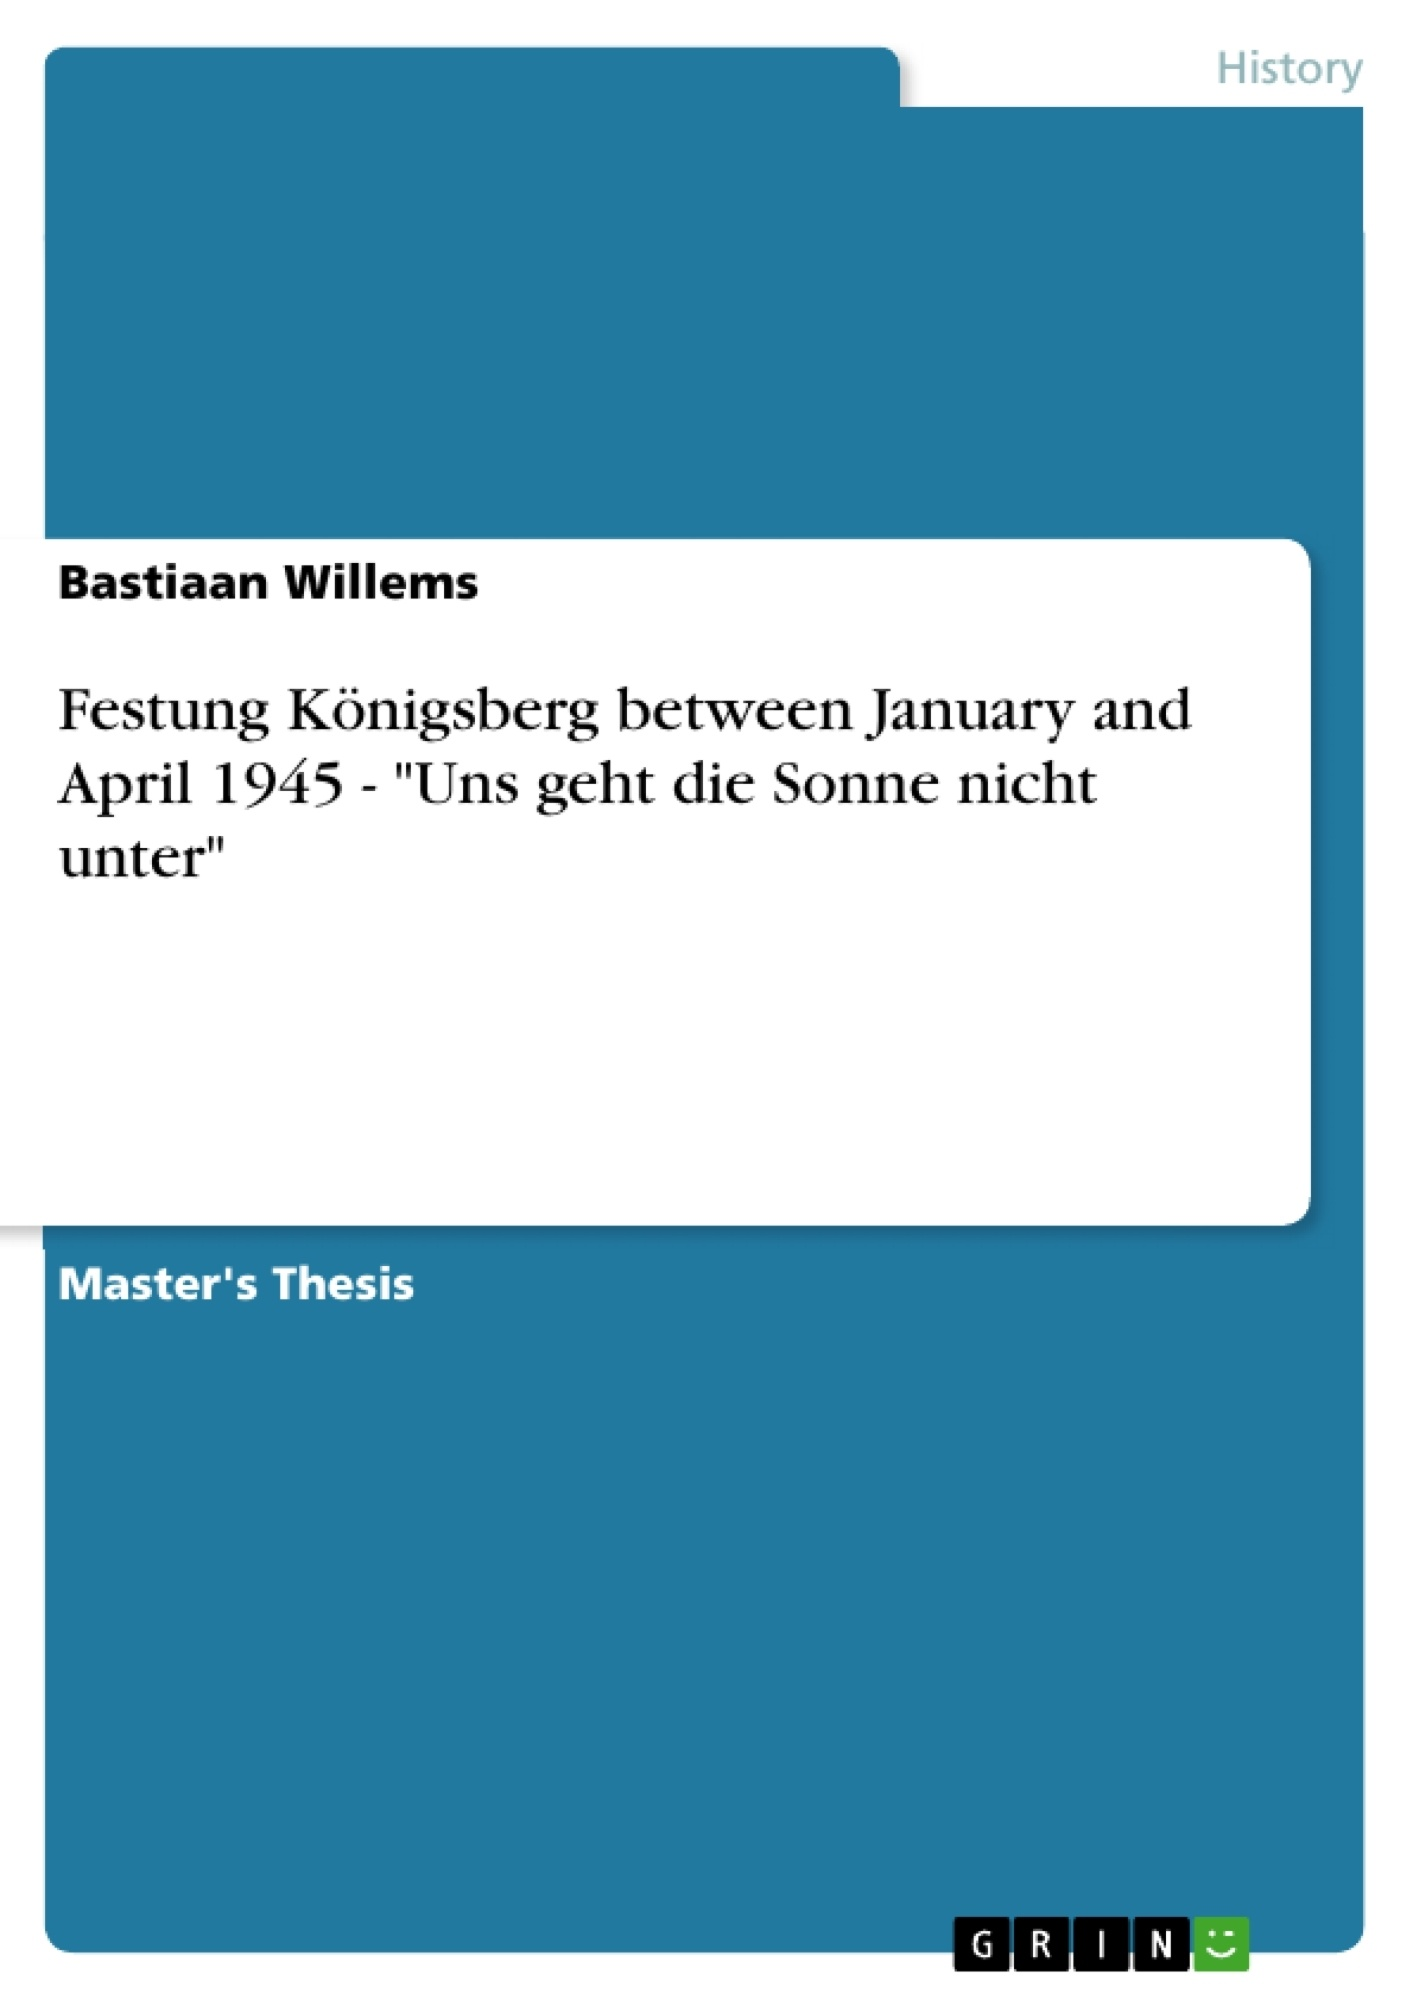 How can I download a German Master Thesis(written in German)? I'm a Chinese reader?